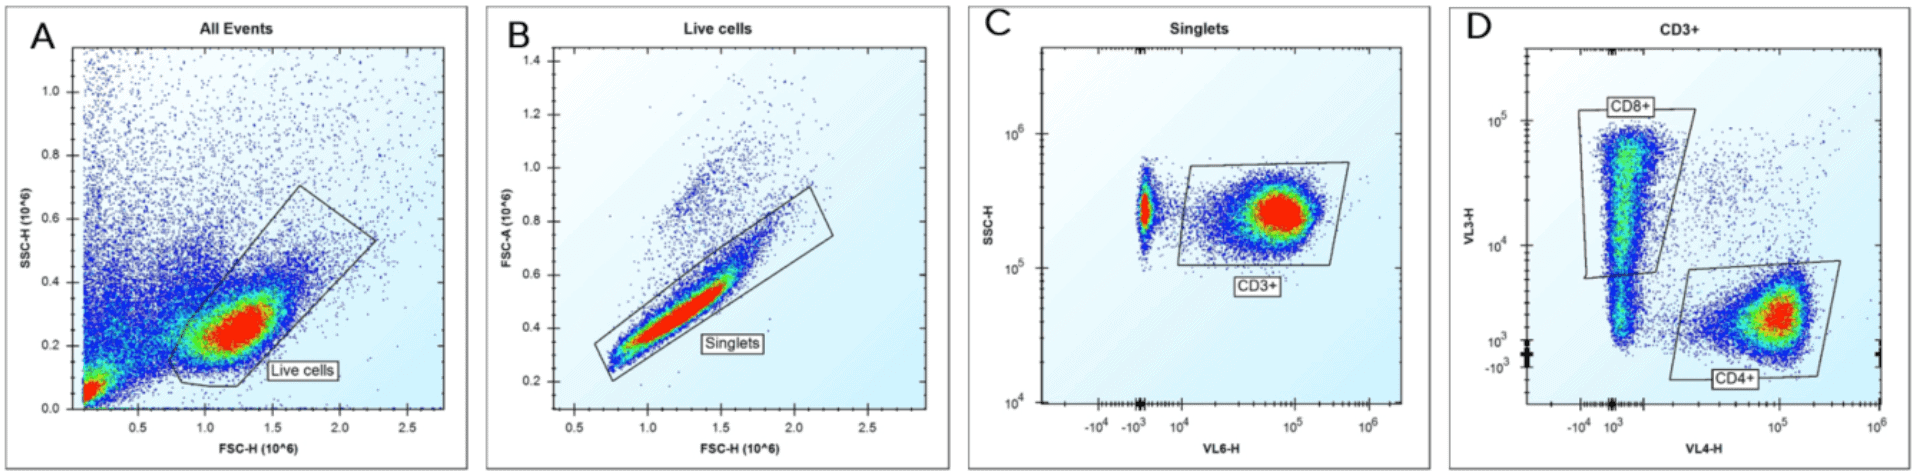 iQue® T Cell Phenotyping Kit (CD3, CD4 and CD8) data analysis